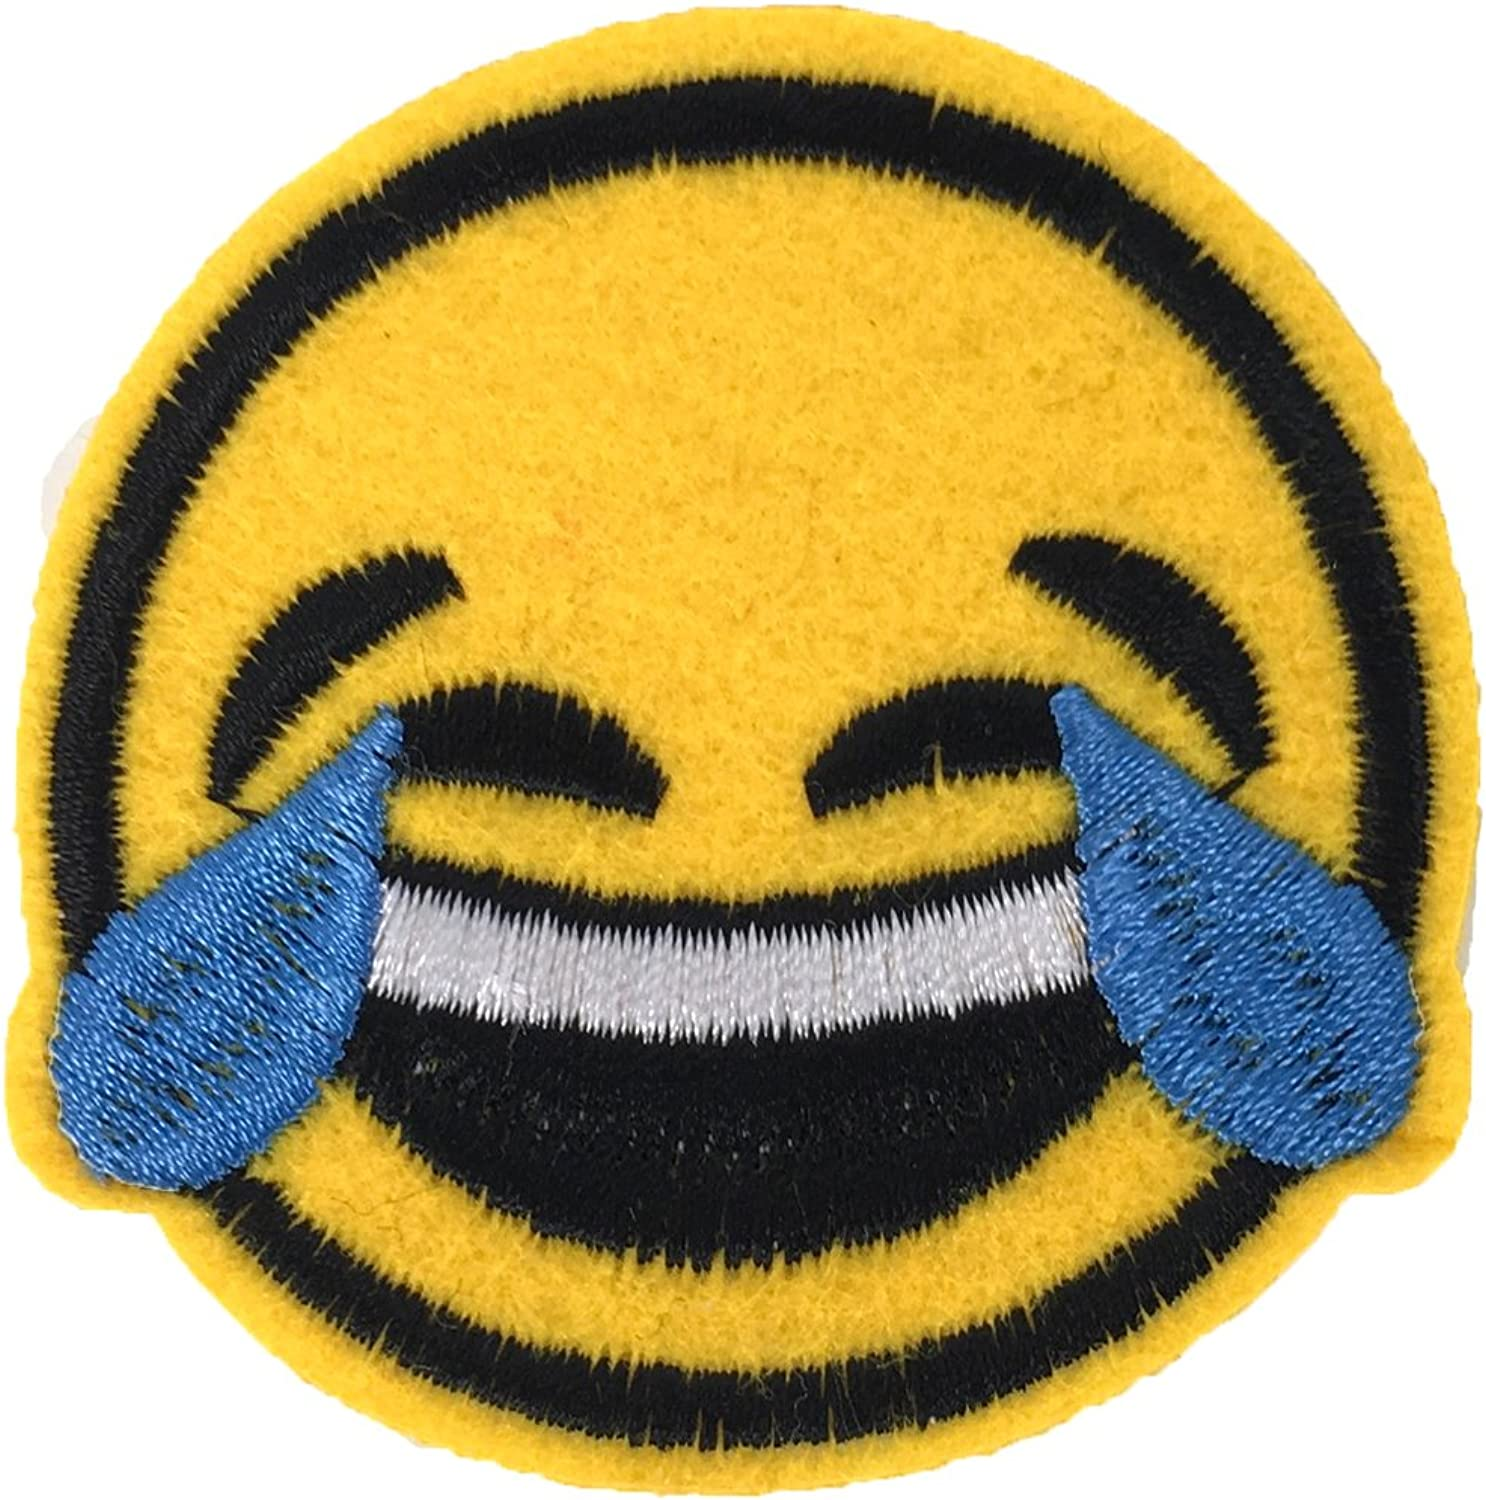 Yellow Fashion Culture LOL Emoji Embroidered Iron On Patch Applique